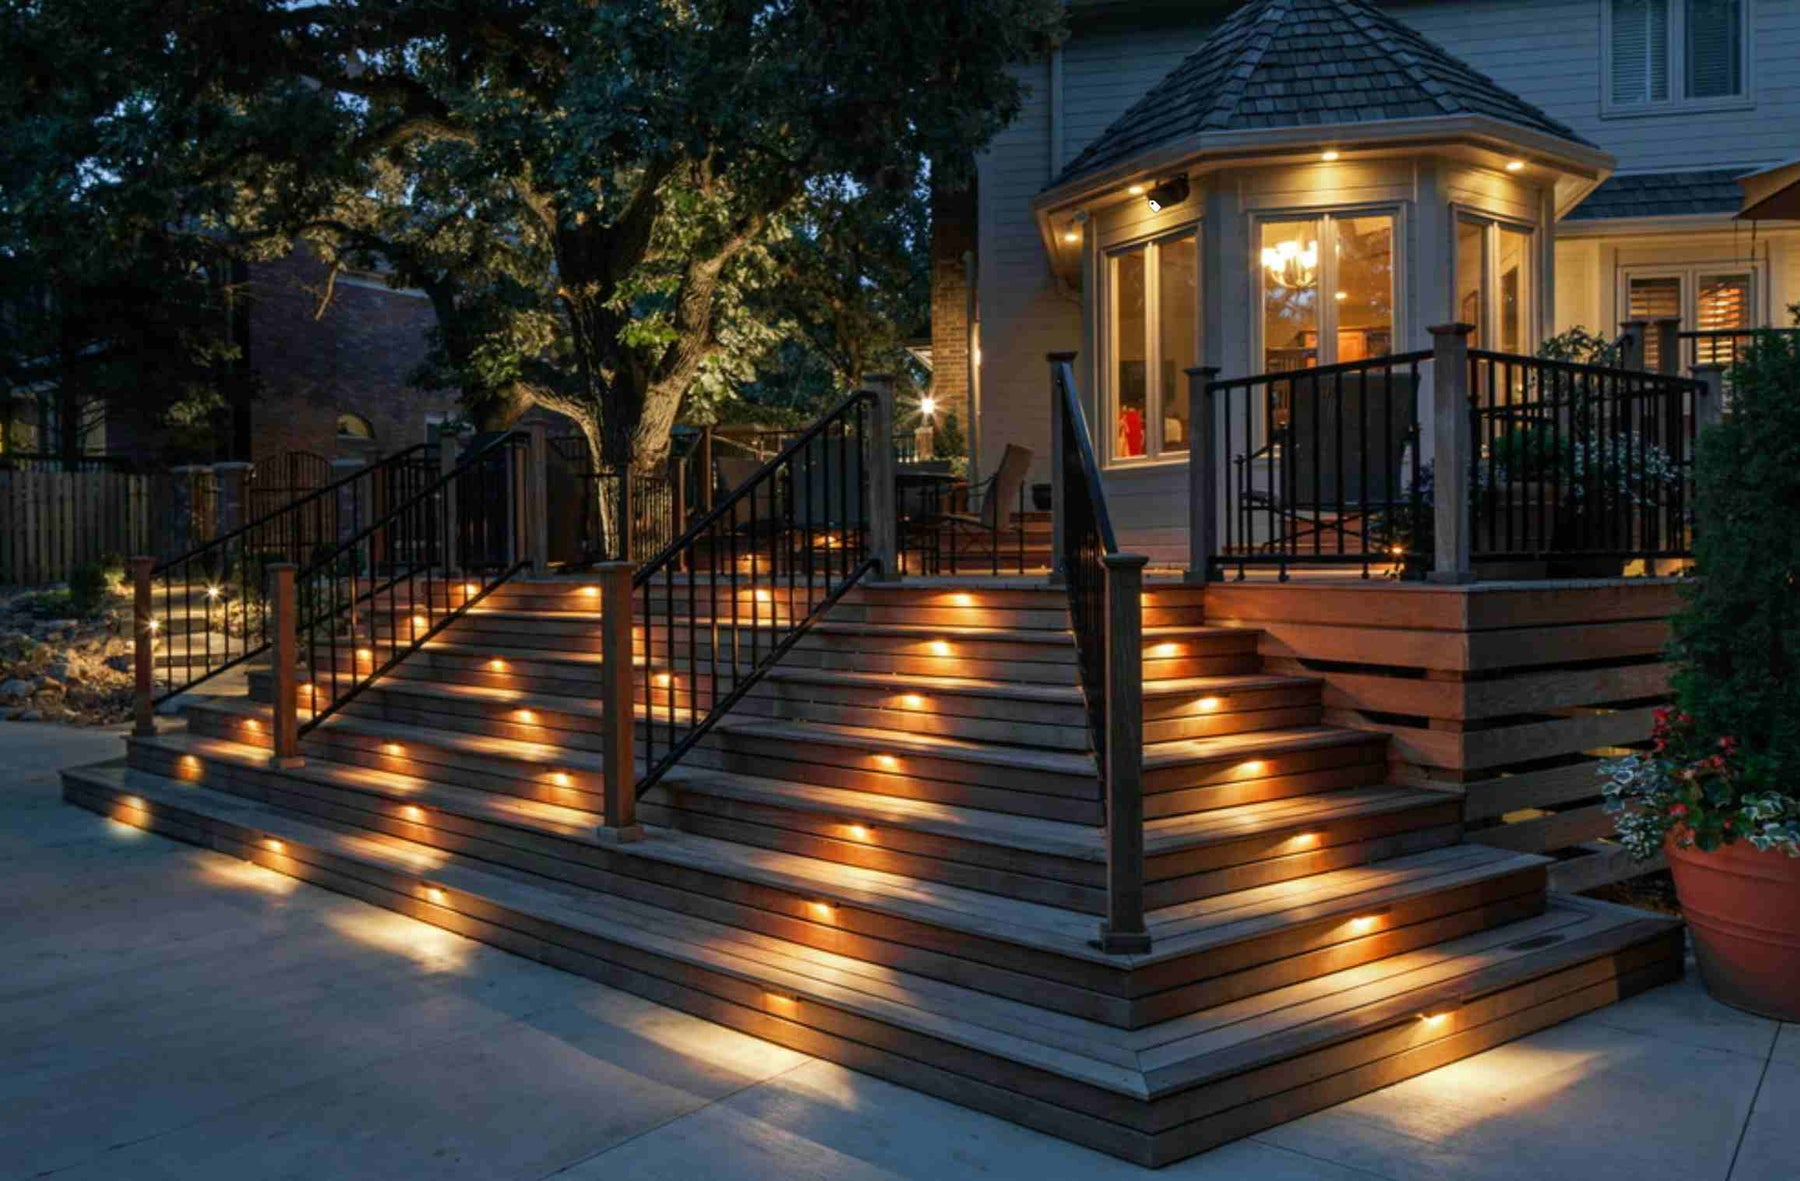 How to decorate your porch using lighting fixtures